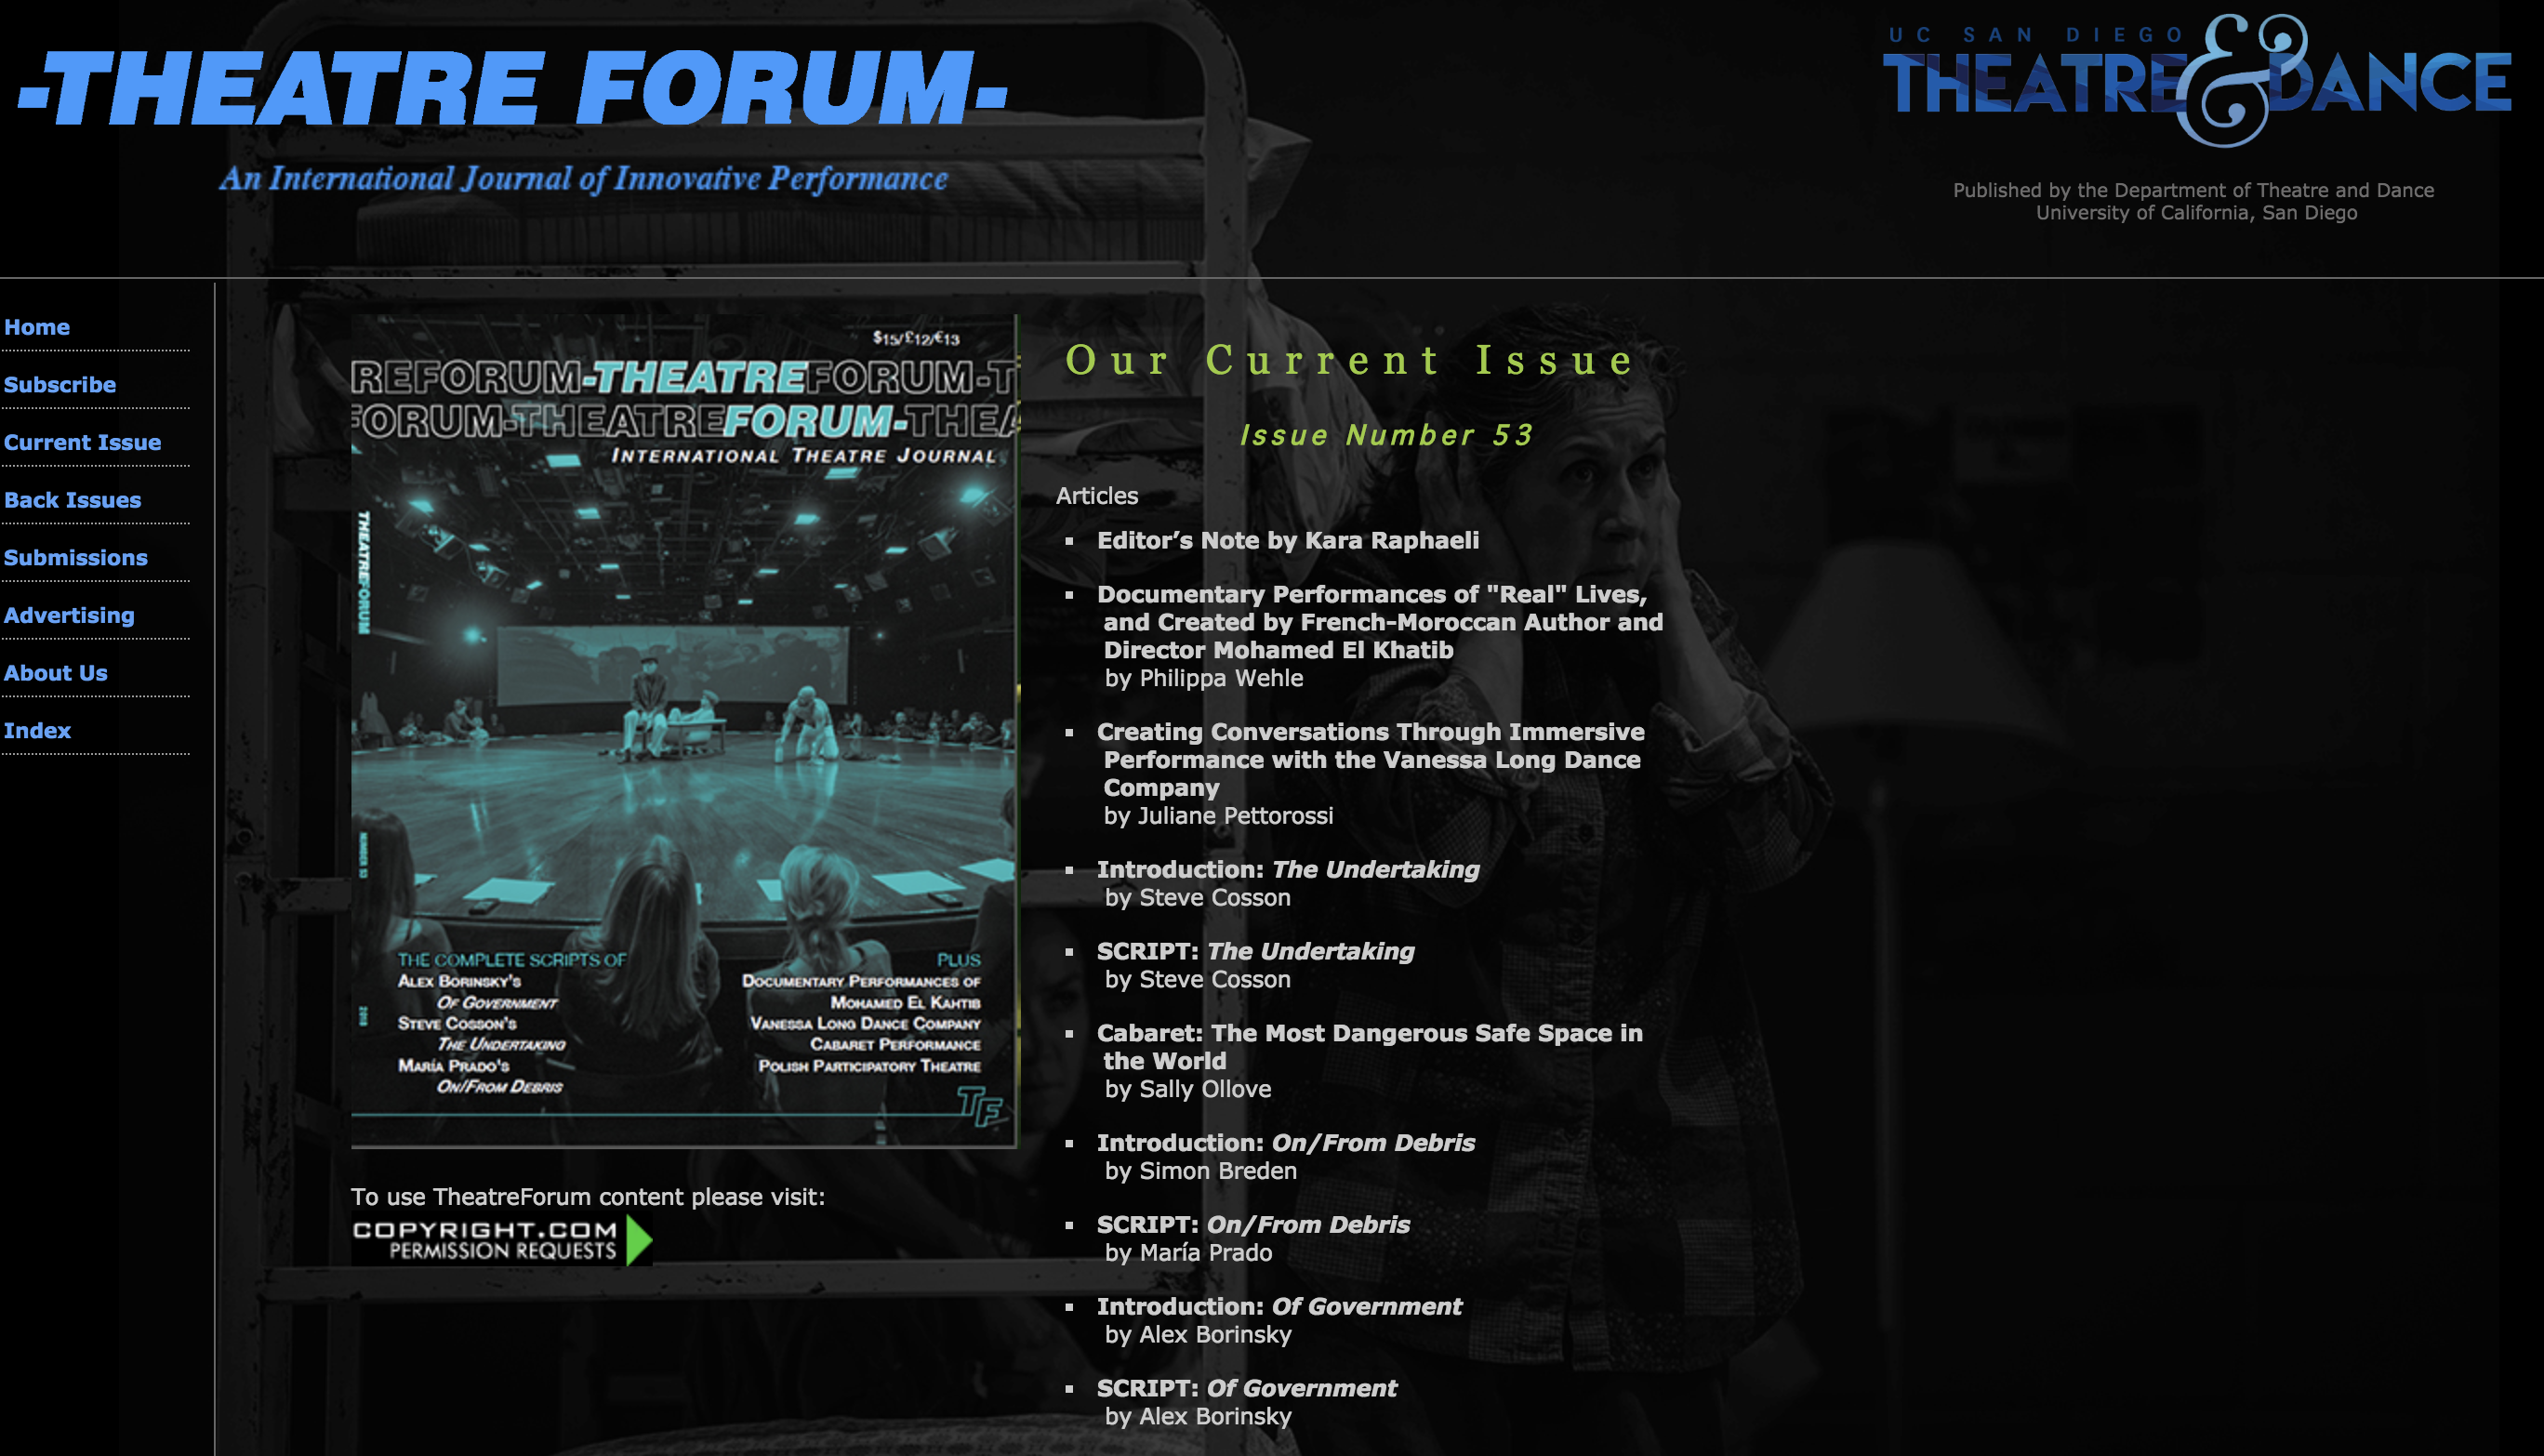 On/From Debris publicada en International Theatre Forum